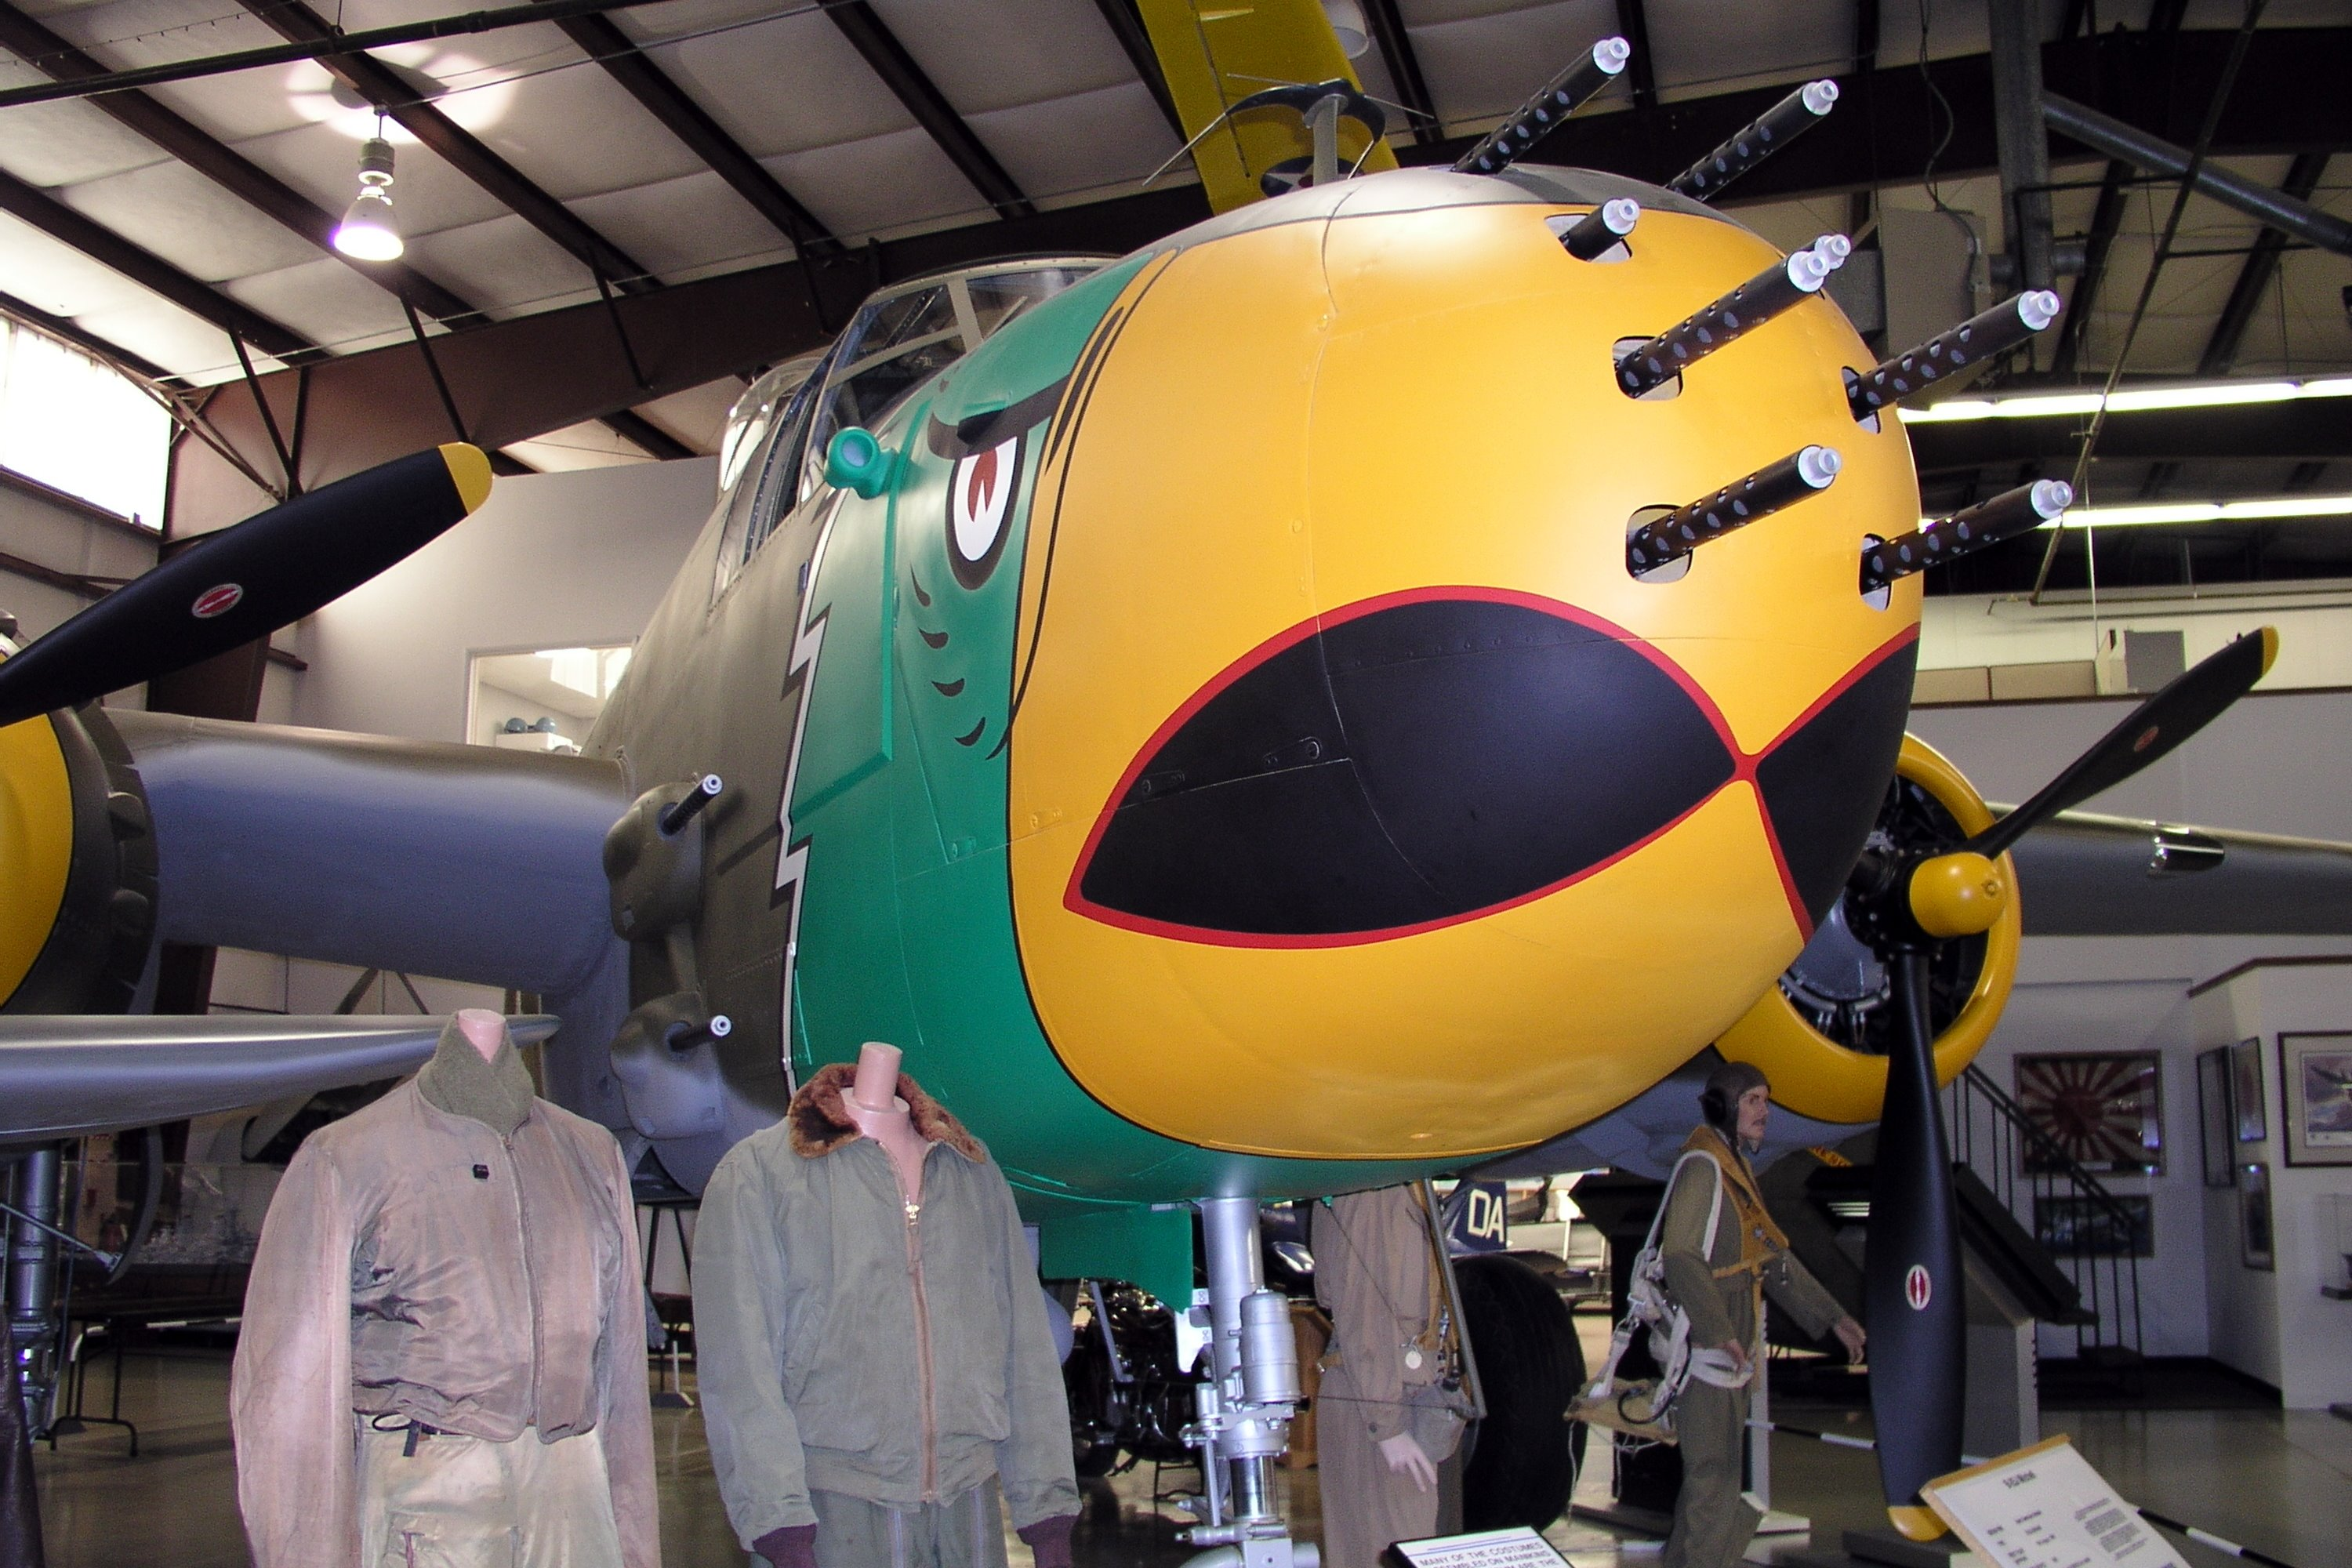 North American B 25h Mitchell Specifications And Photos 26 Marauder Engine Diagram 10 Na 98 Af 43 4899 C N 21900 N37l On Display 9 29 2003 At The Kalamazoo Aviation History Museum Portage